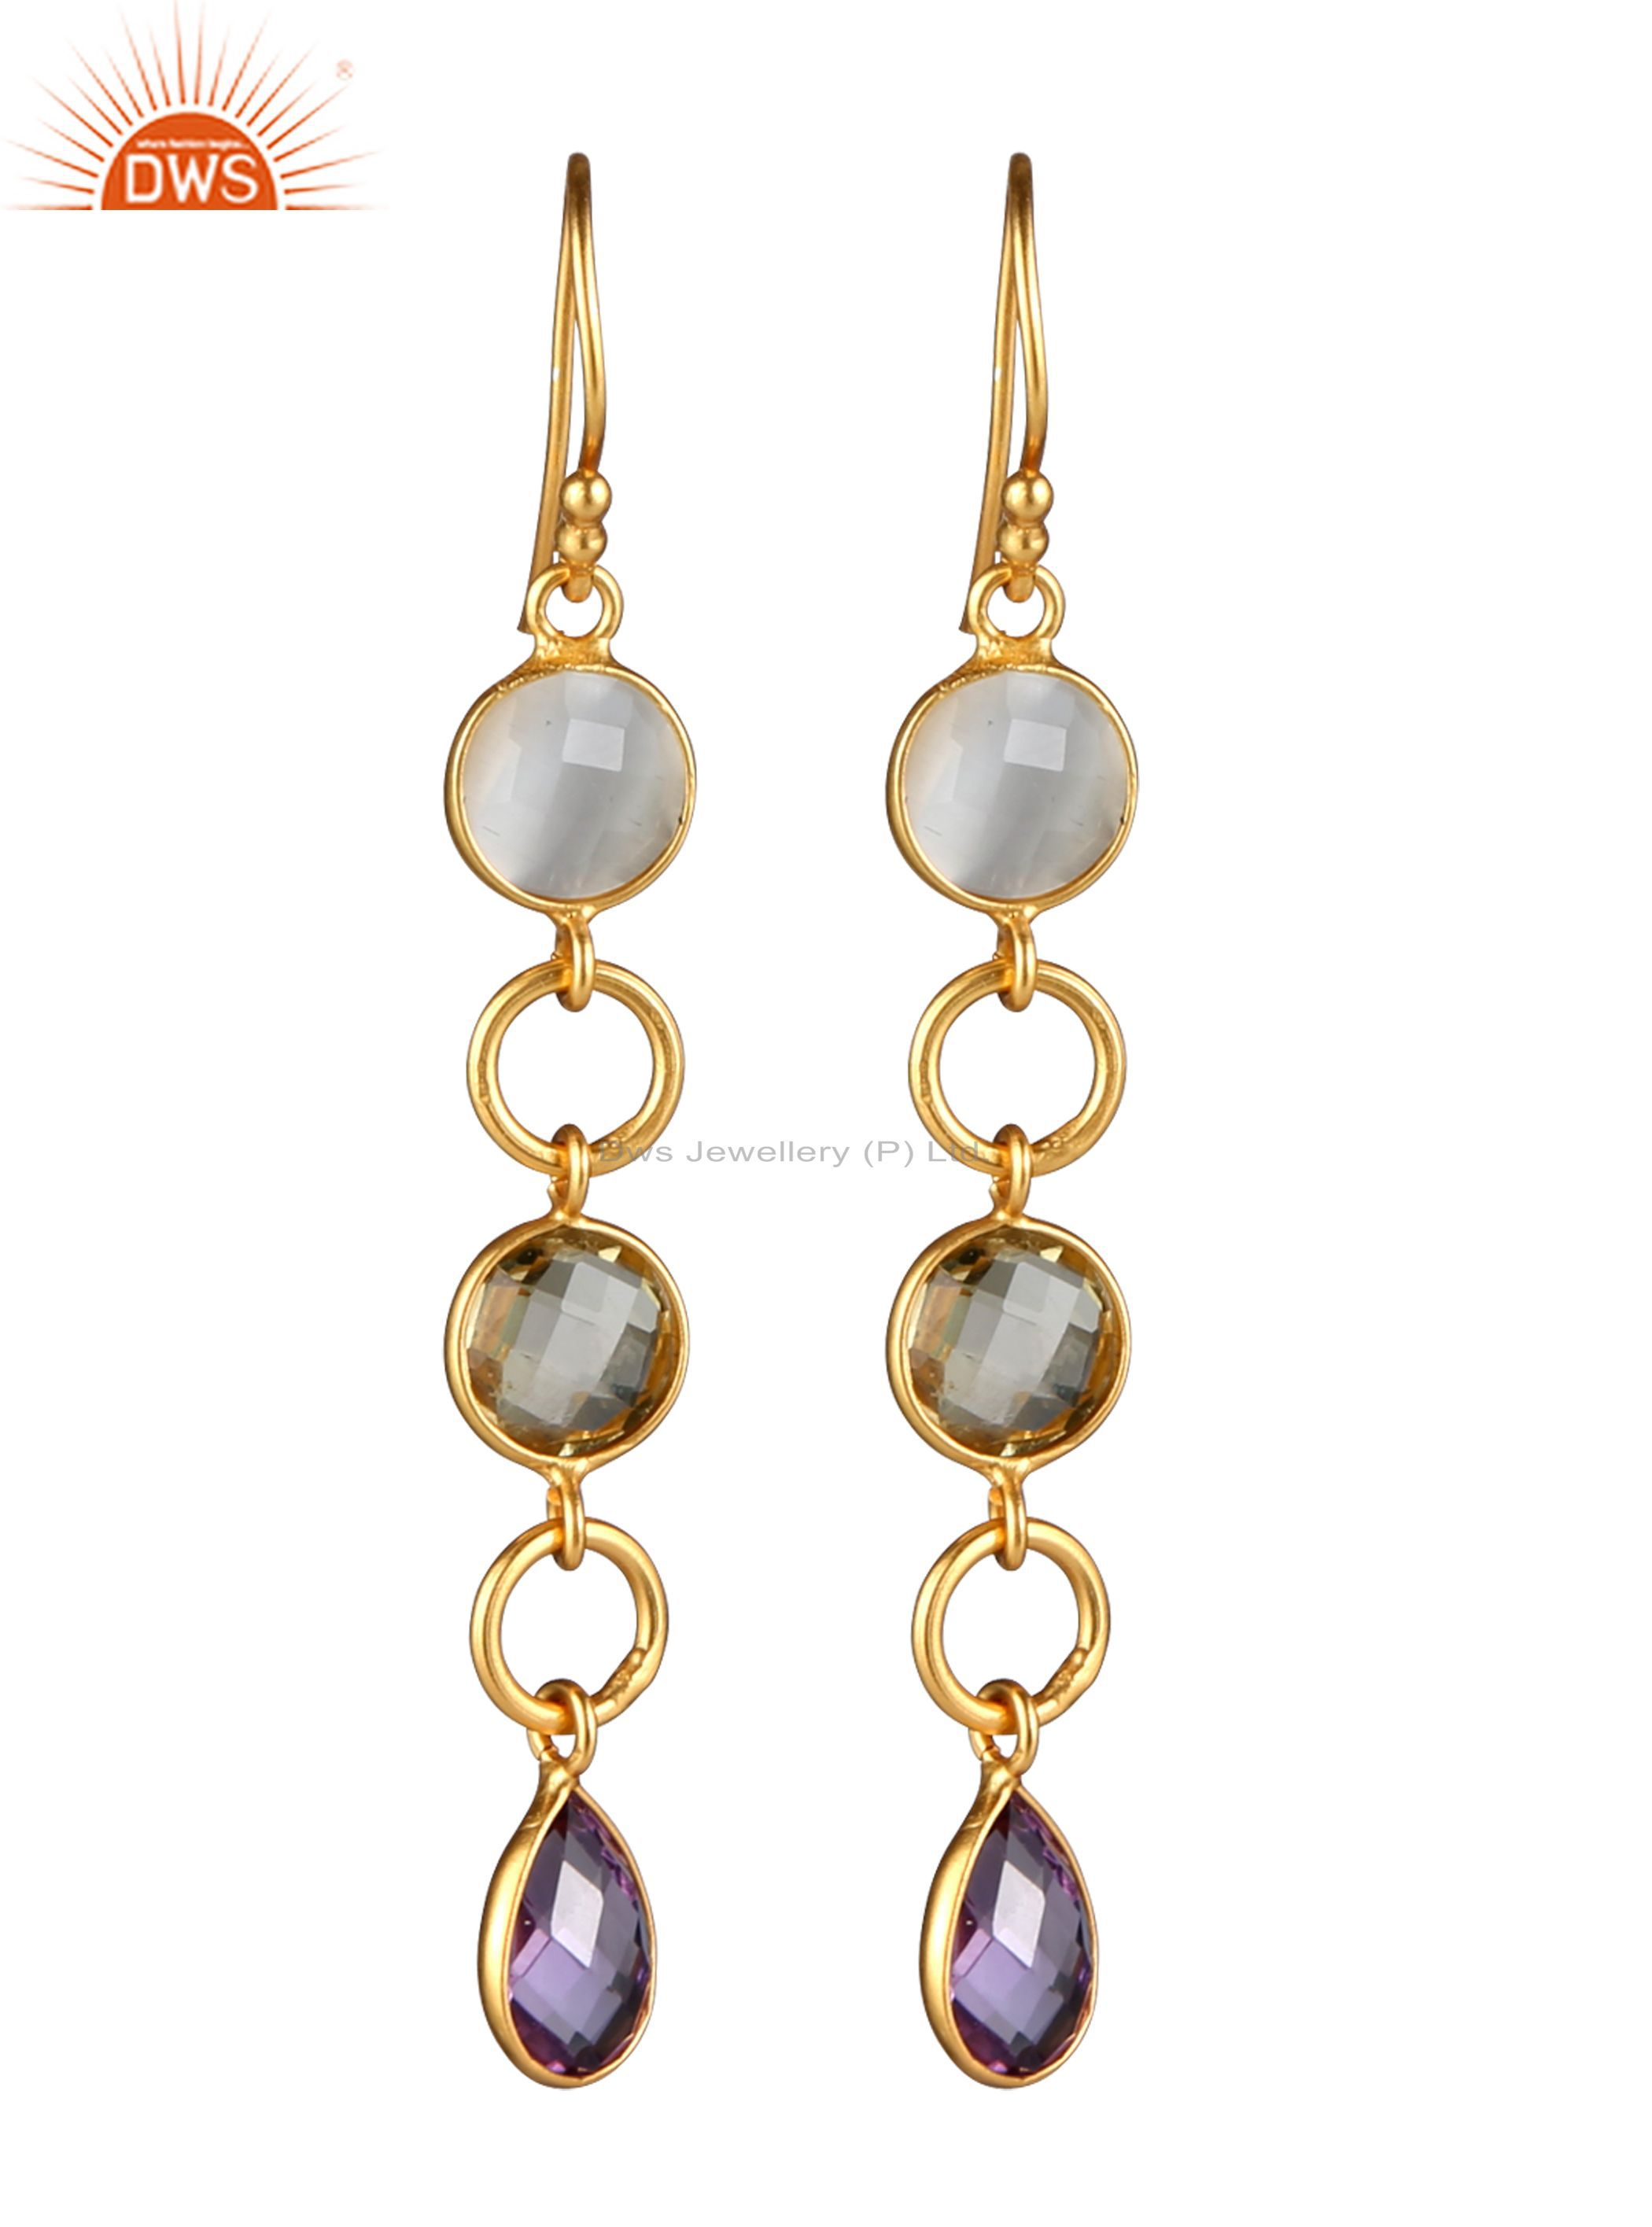 18K Yellow Gold Plated Sterling Silver Lemon Topaz And Amethyst Chain Earrings